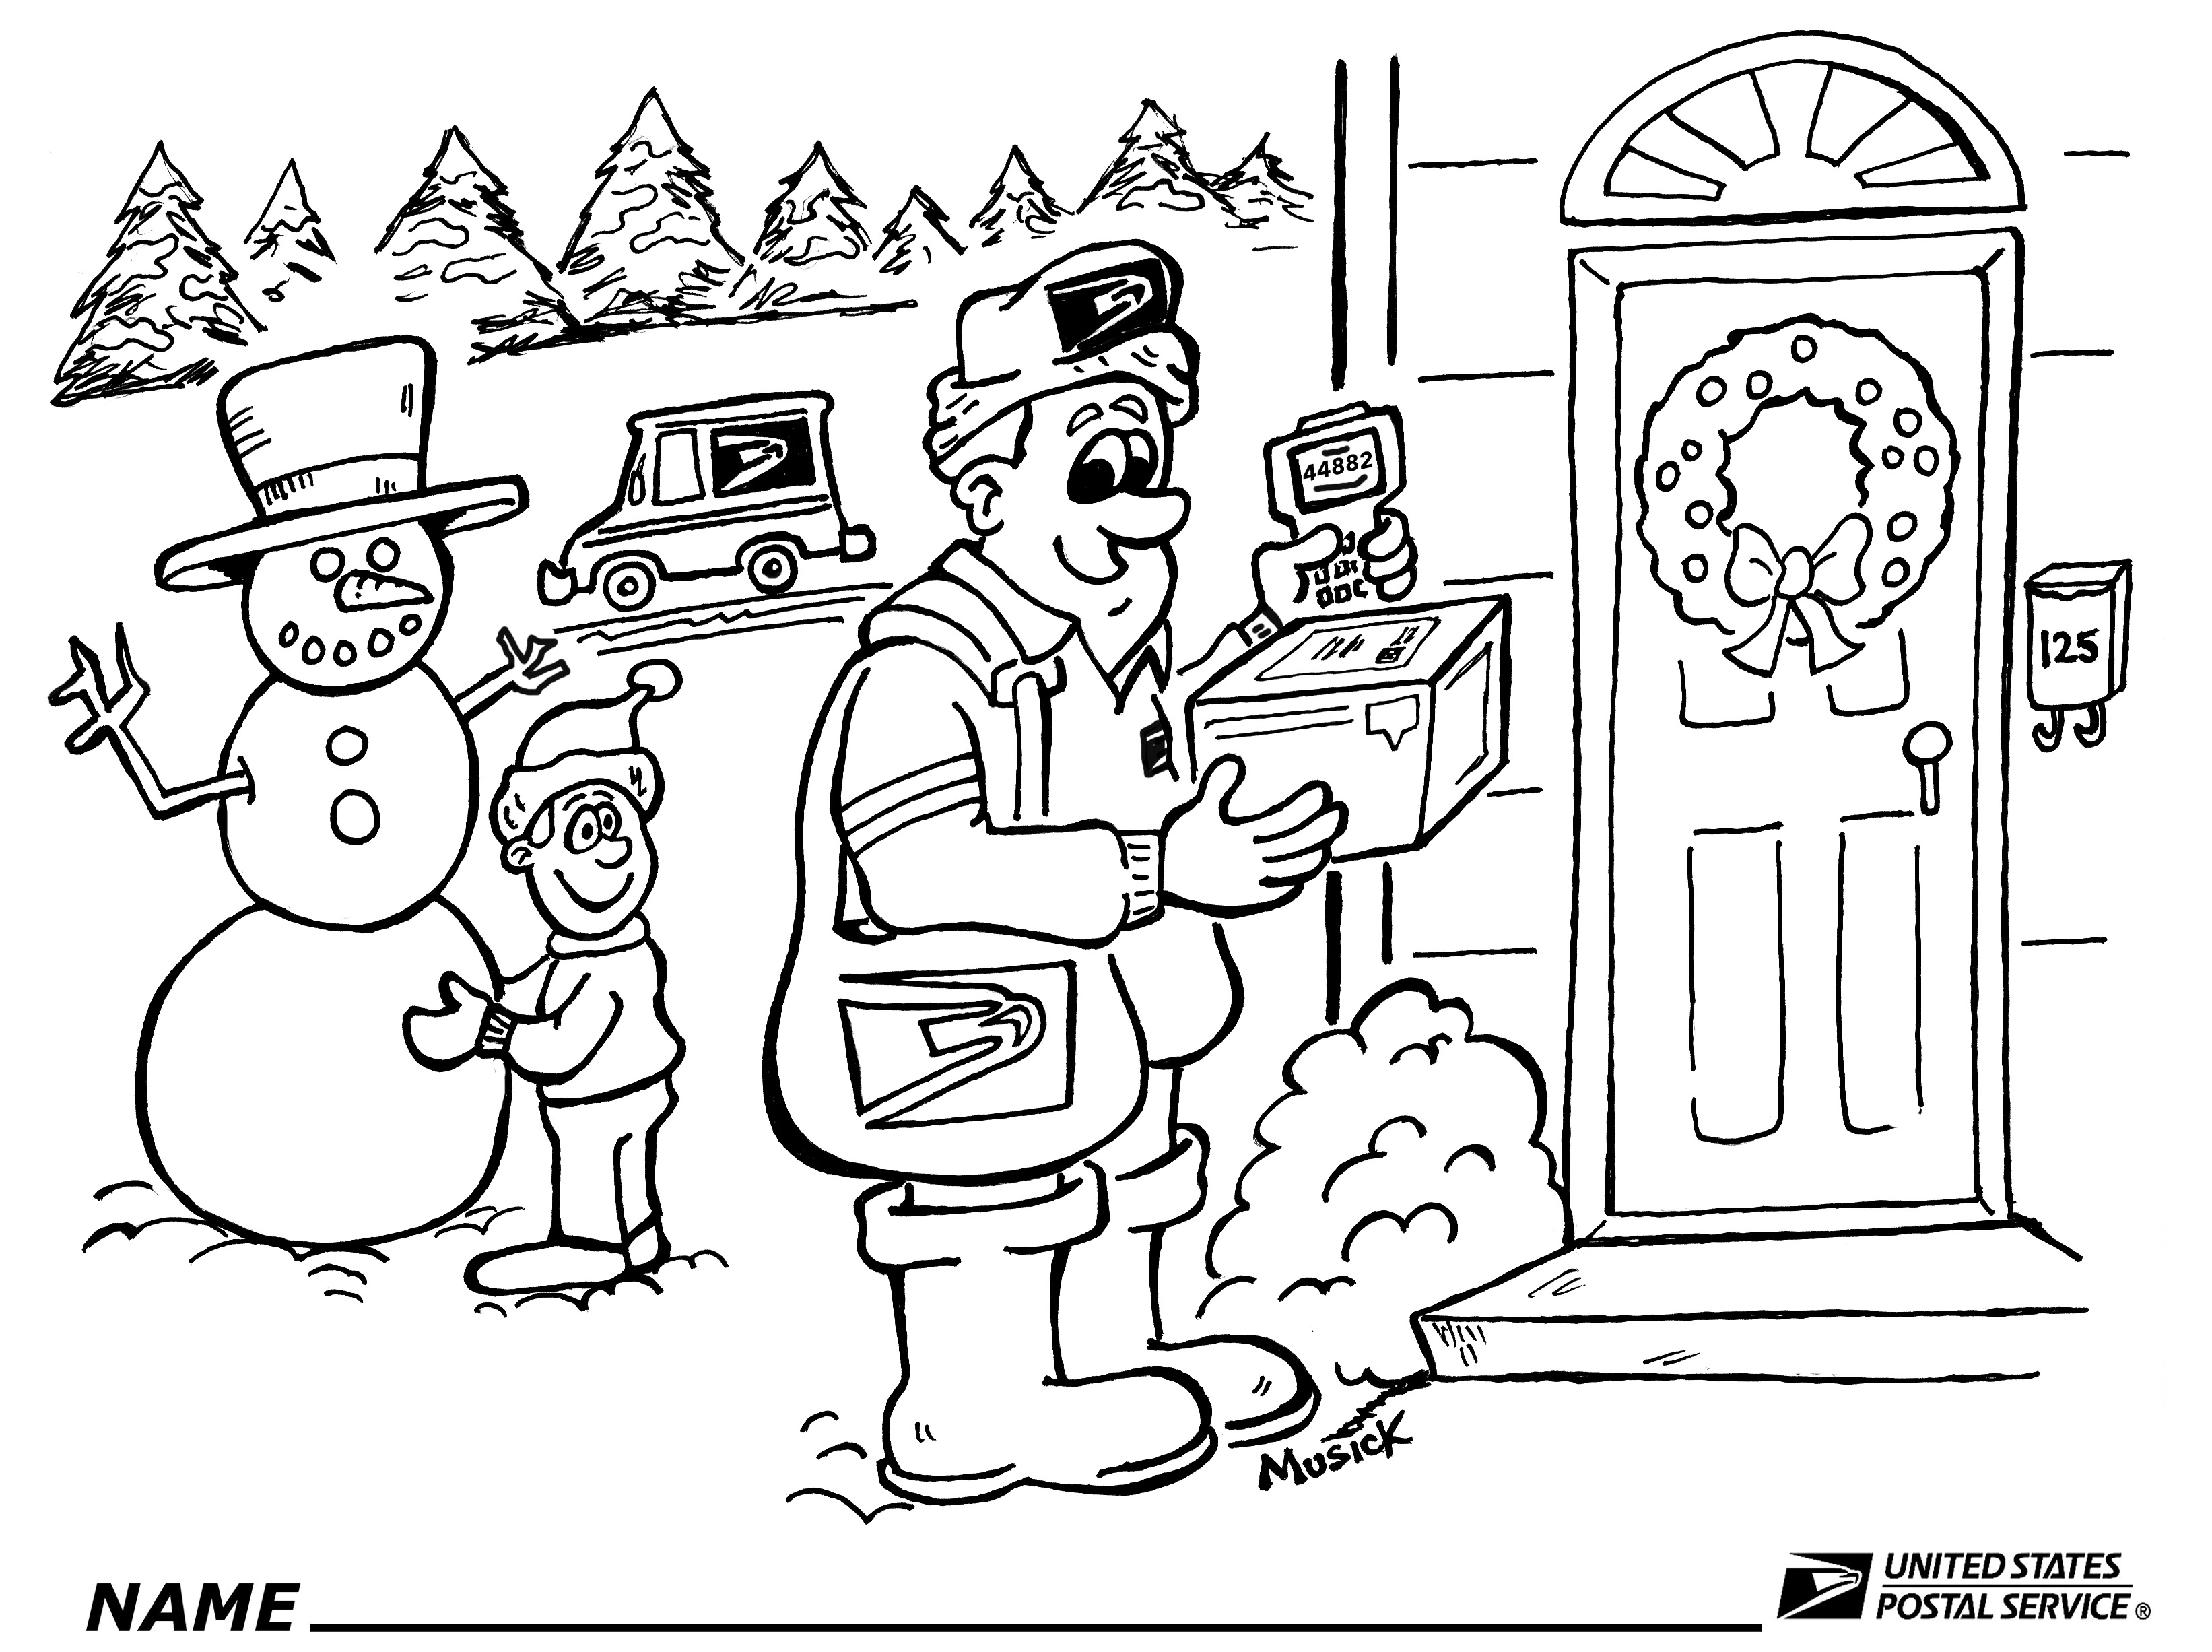 postal coloring pages - photo#3